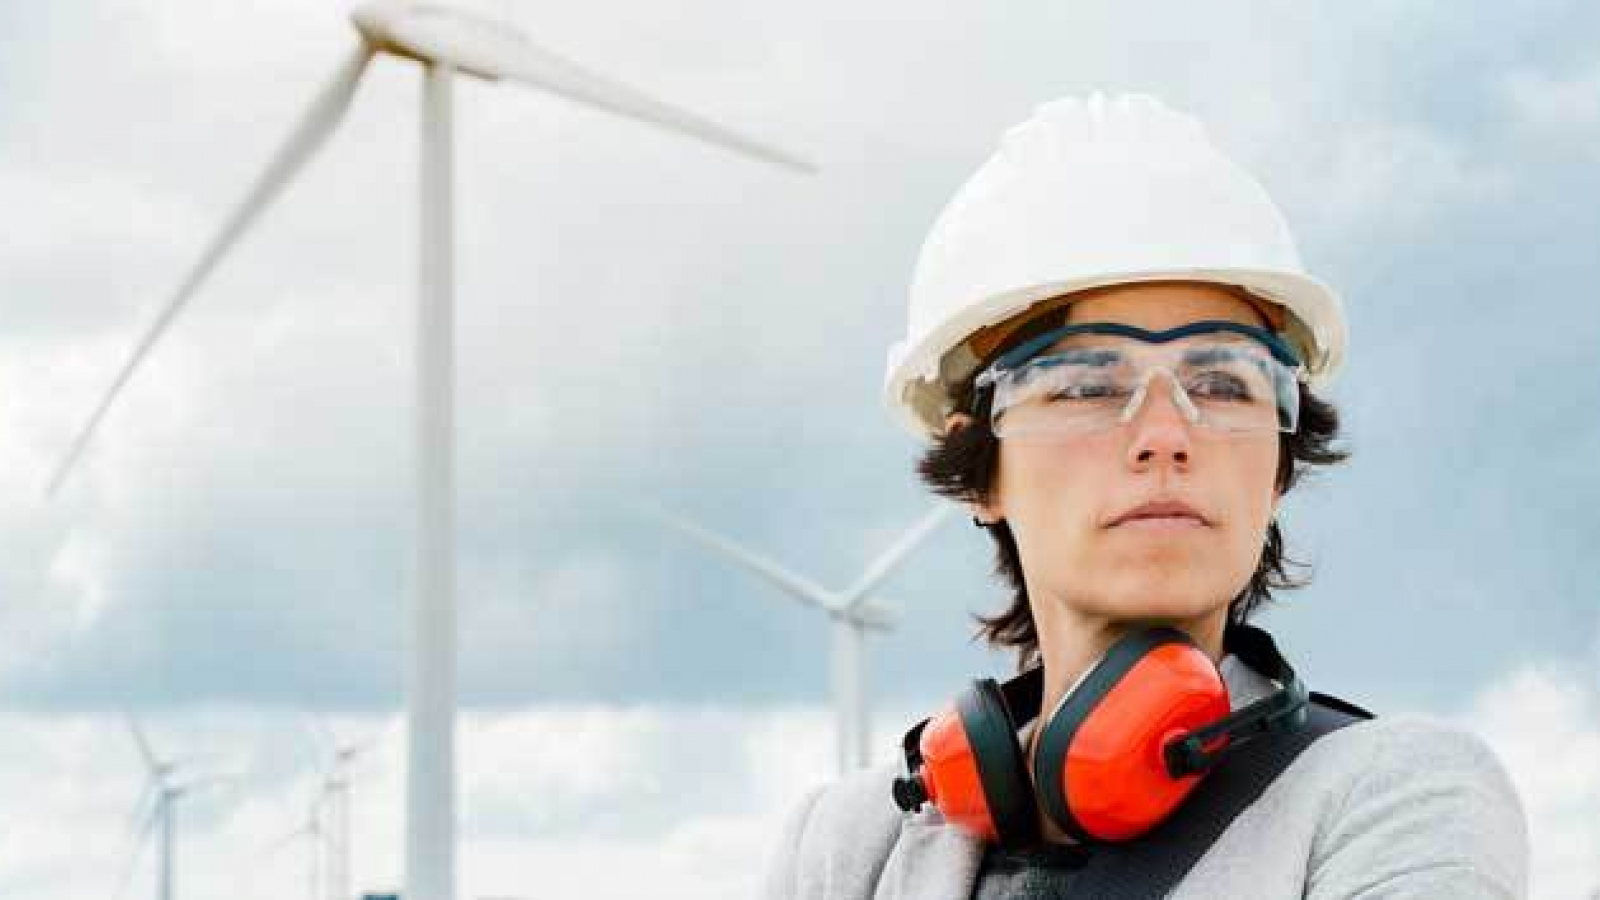 The European Bank for Reconstruction and Development launches programme to support women in green energy in Egypt